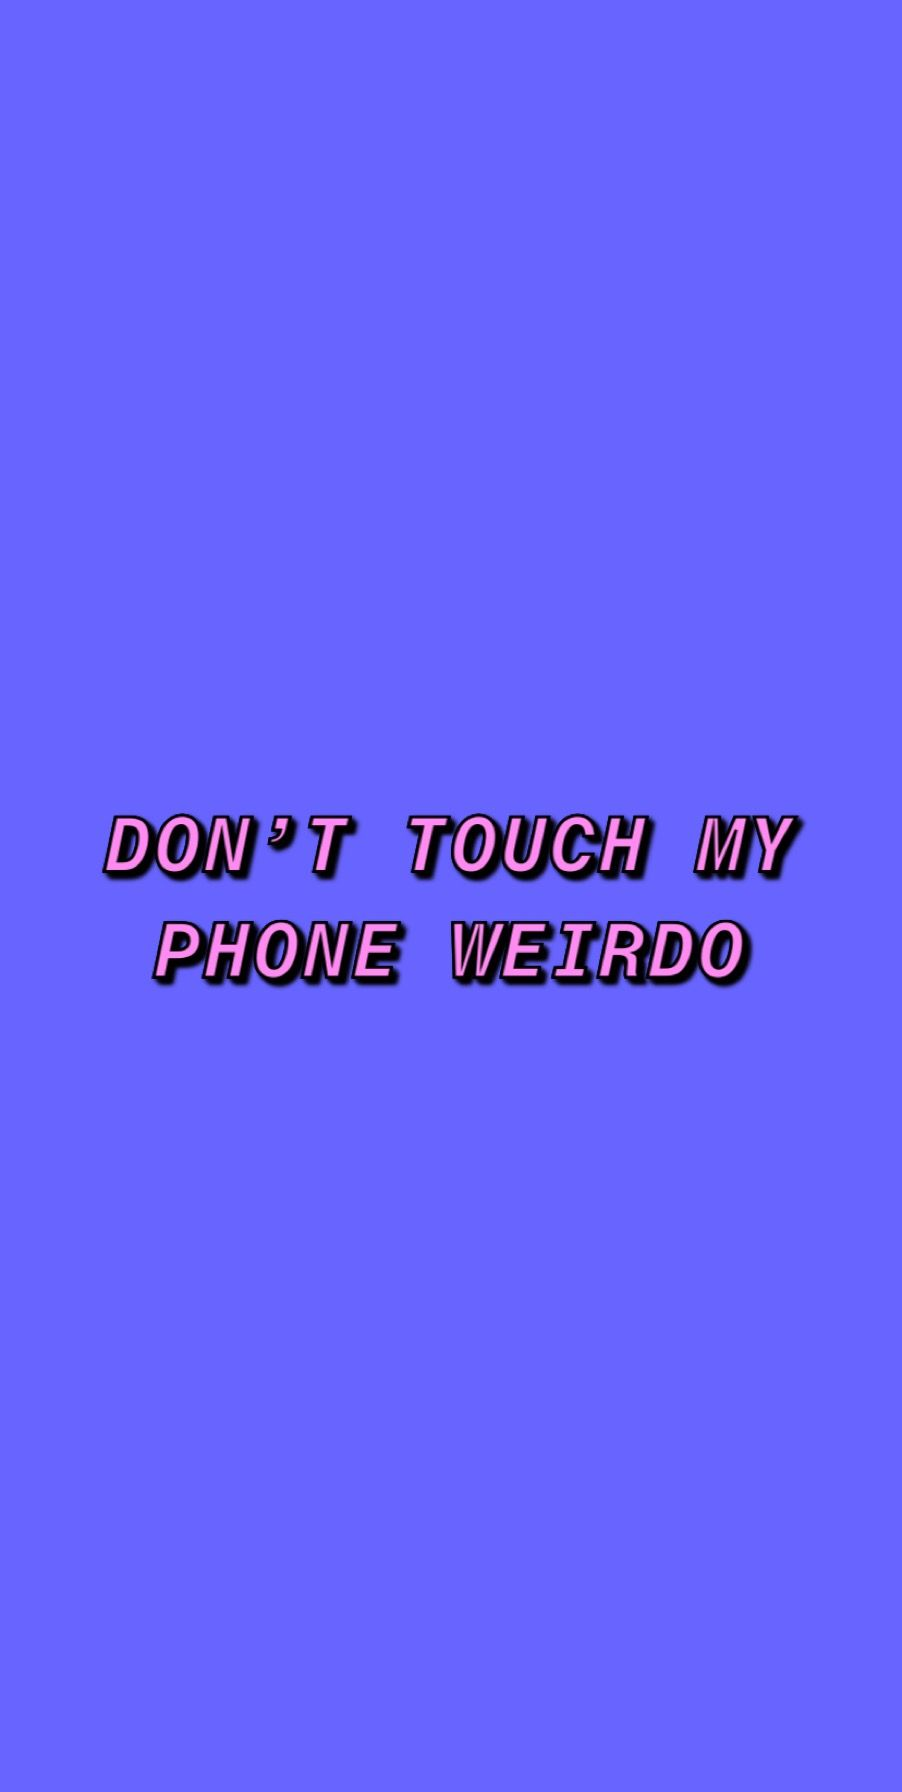 Dont Touch My Phone Purple Wallpaper Dont Touch My Phone Wallpapers Purple Wallpaper Iphone Wallpaper Vintage